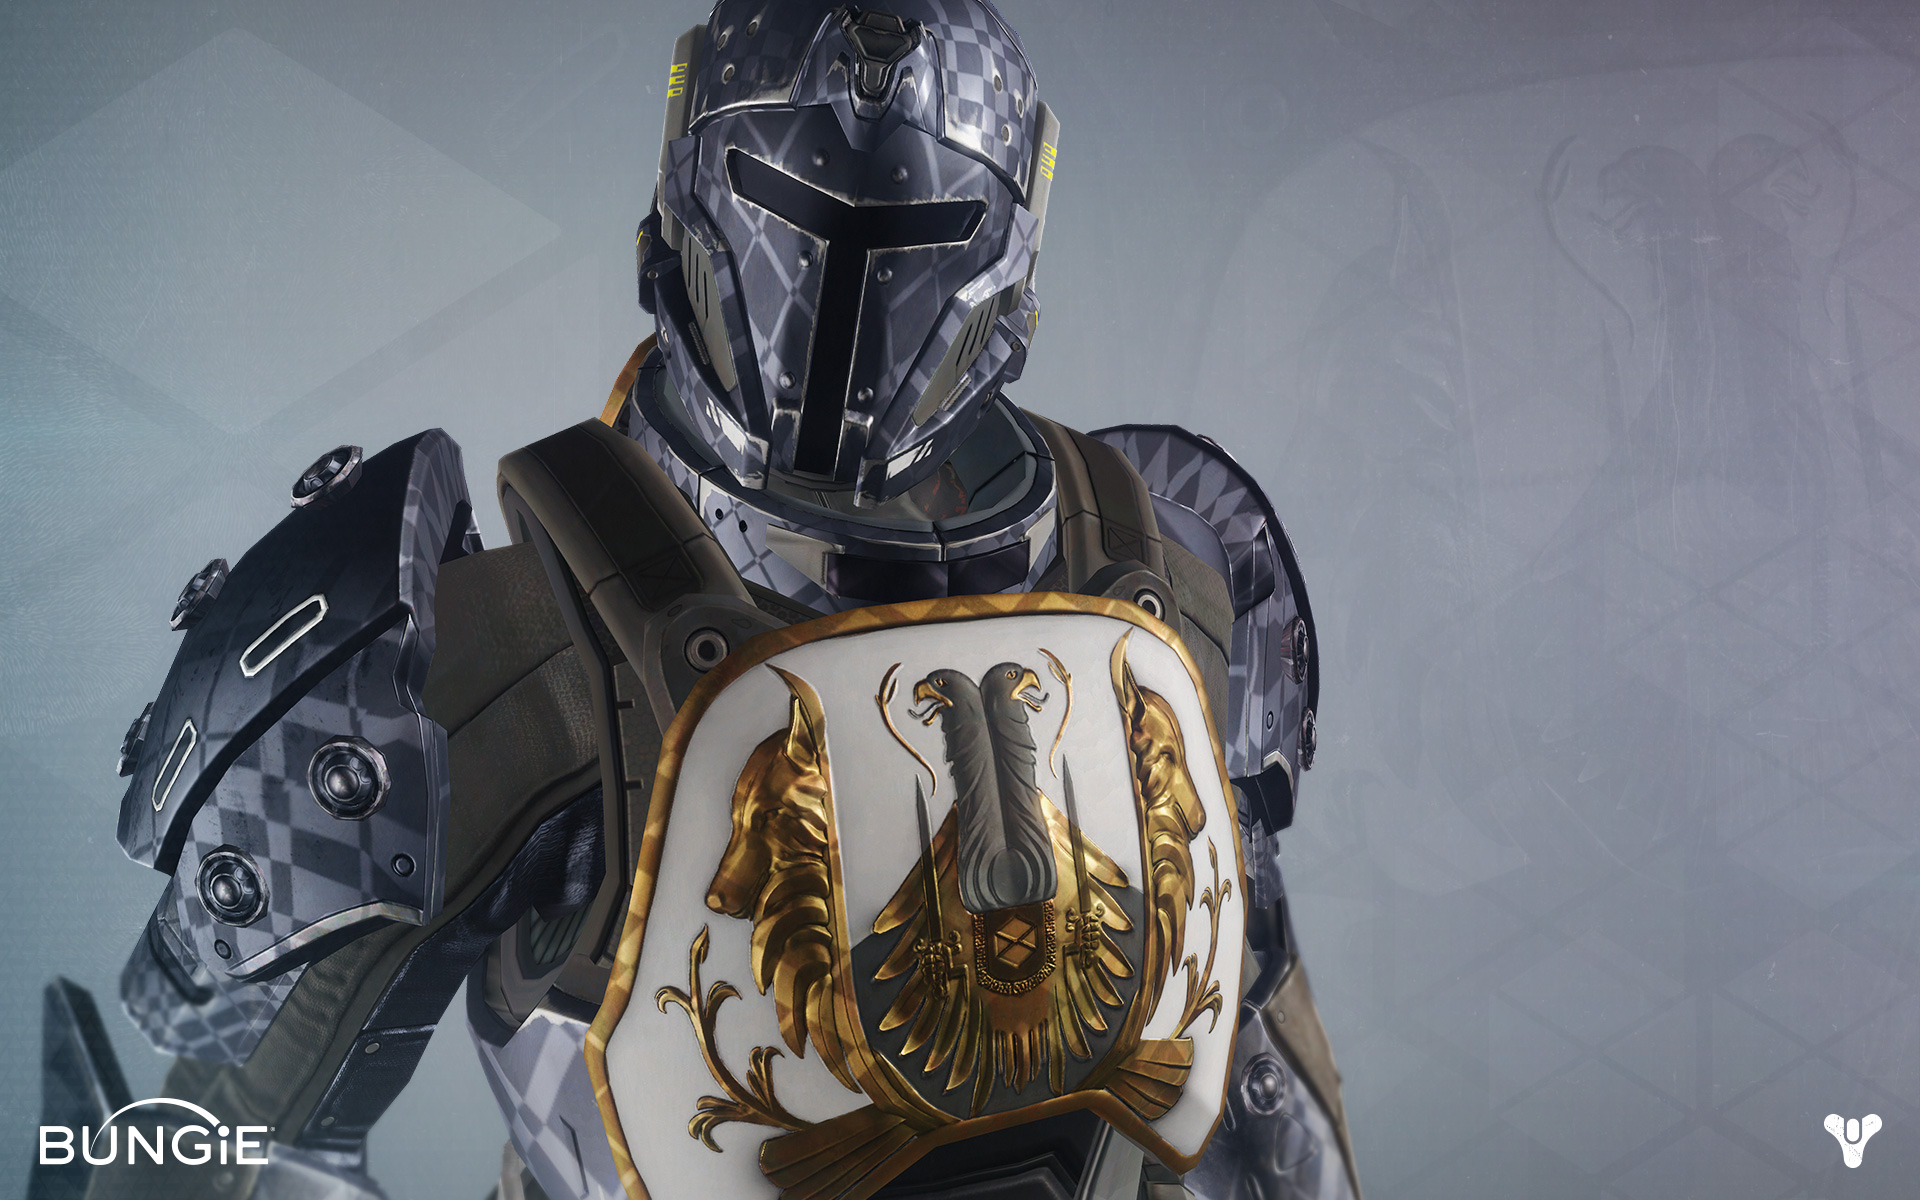 Destiny character design video released by Bungie - Post ...